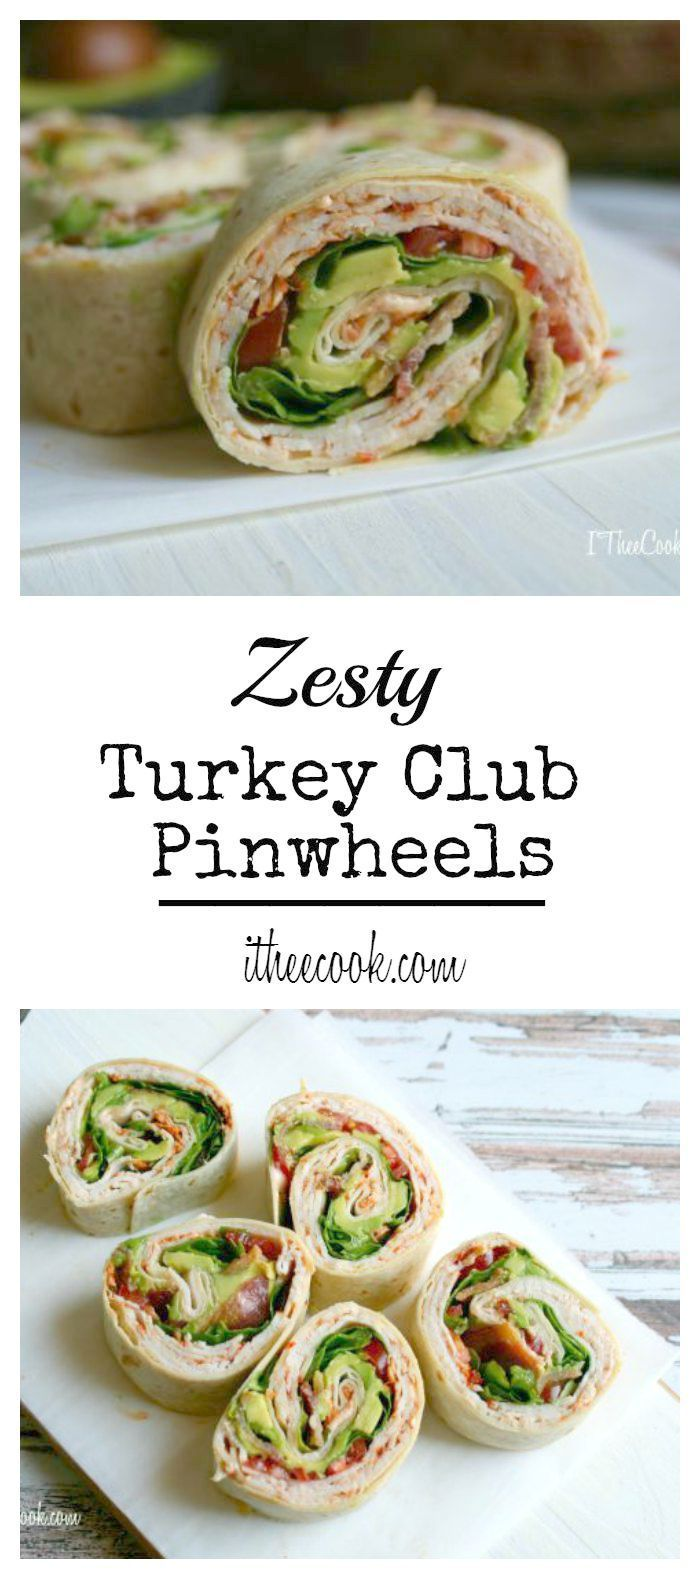 I Thee Cook: Zesty Turkey Club Pinwheels, stuffed with turkey, avocado, bacon, tomato and mixed greens with a delicious sriracha sauce!